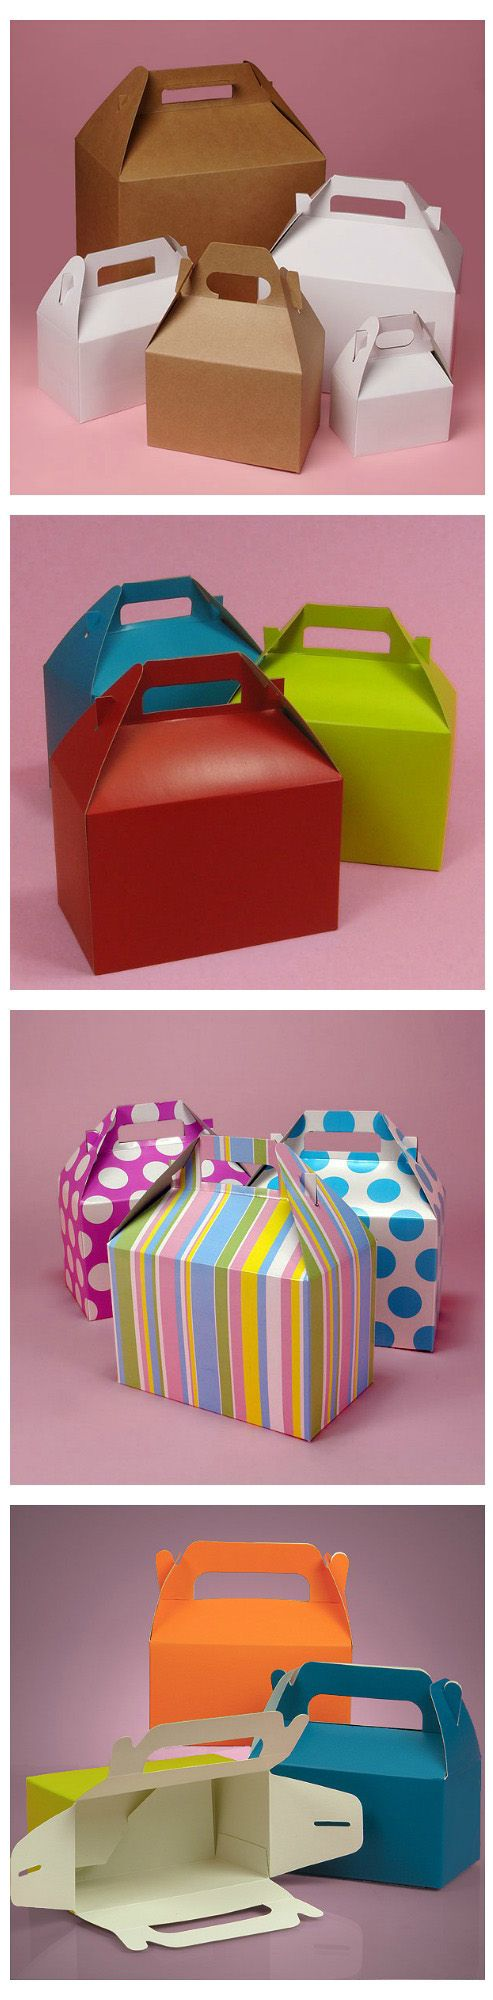 gable gift boxes are great to use for party favors and presents because they have handles which make them easy to carry these gift boxes look a lot like